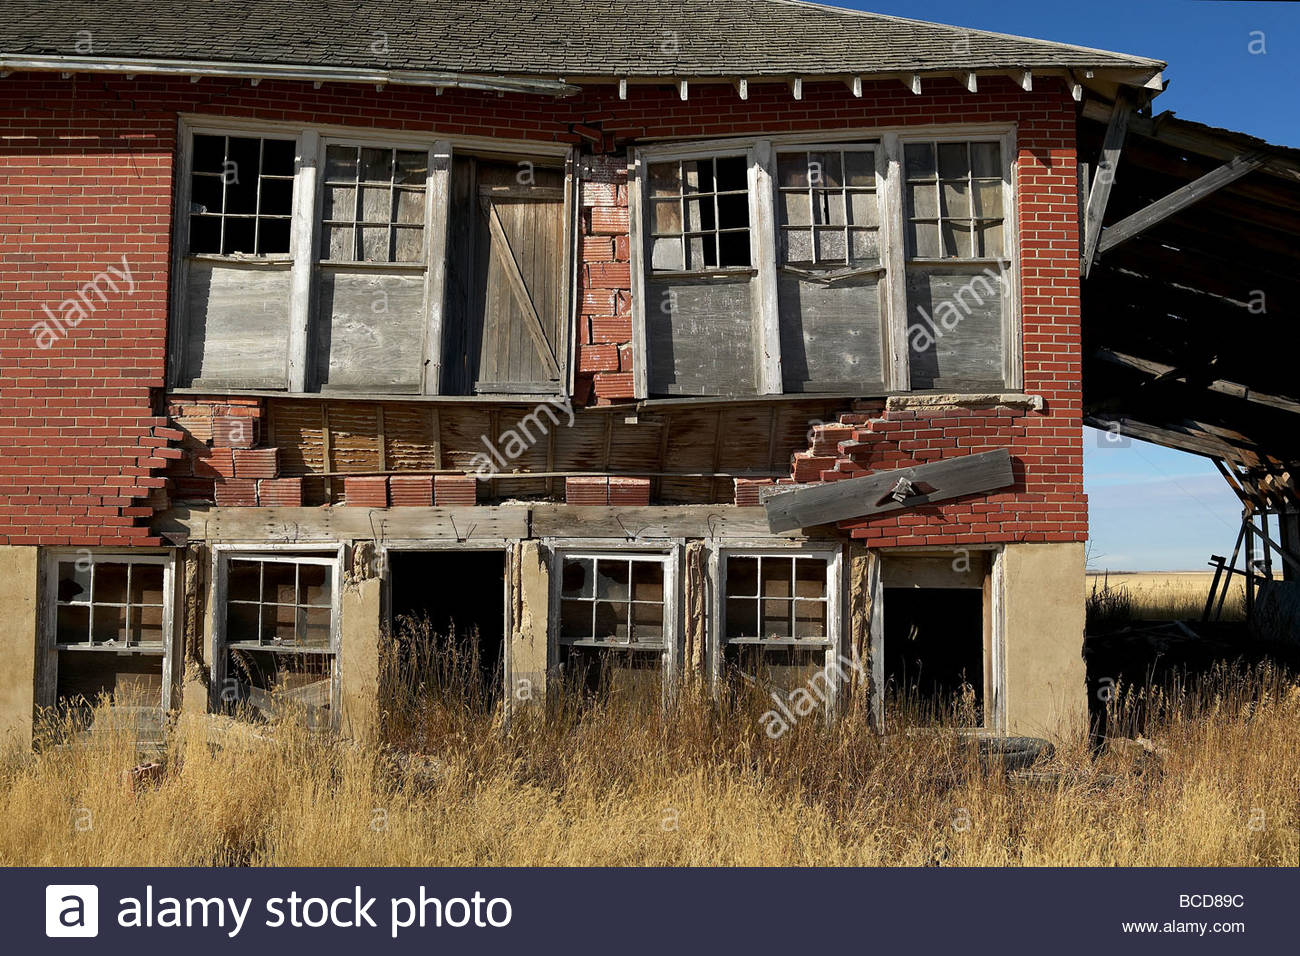 An old General Store in disrepair sits in a field. - Stock Image